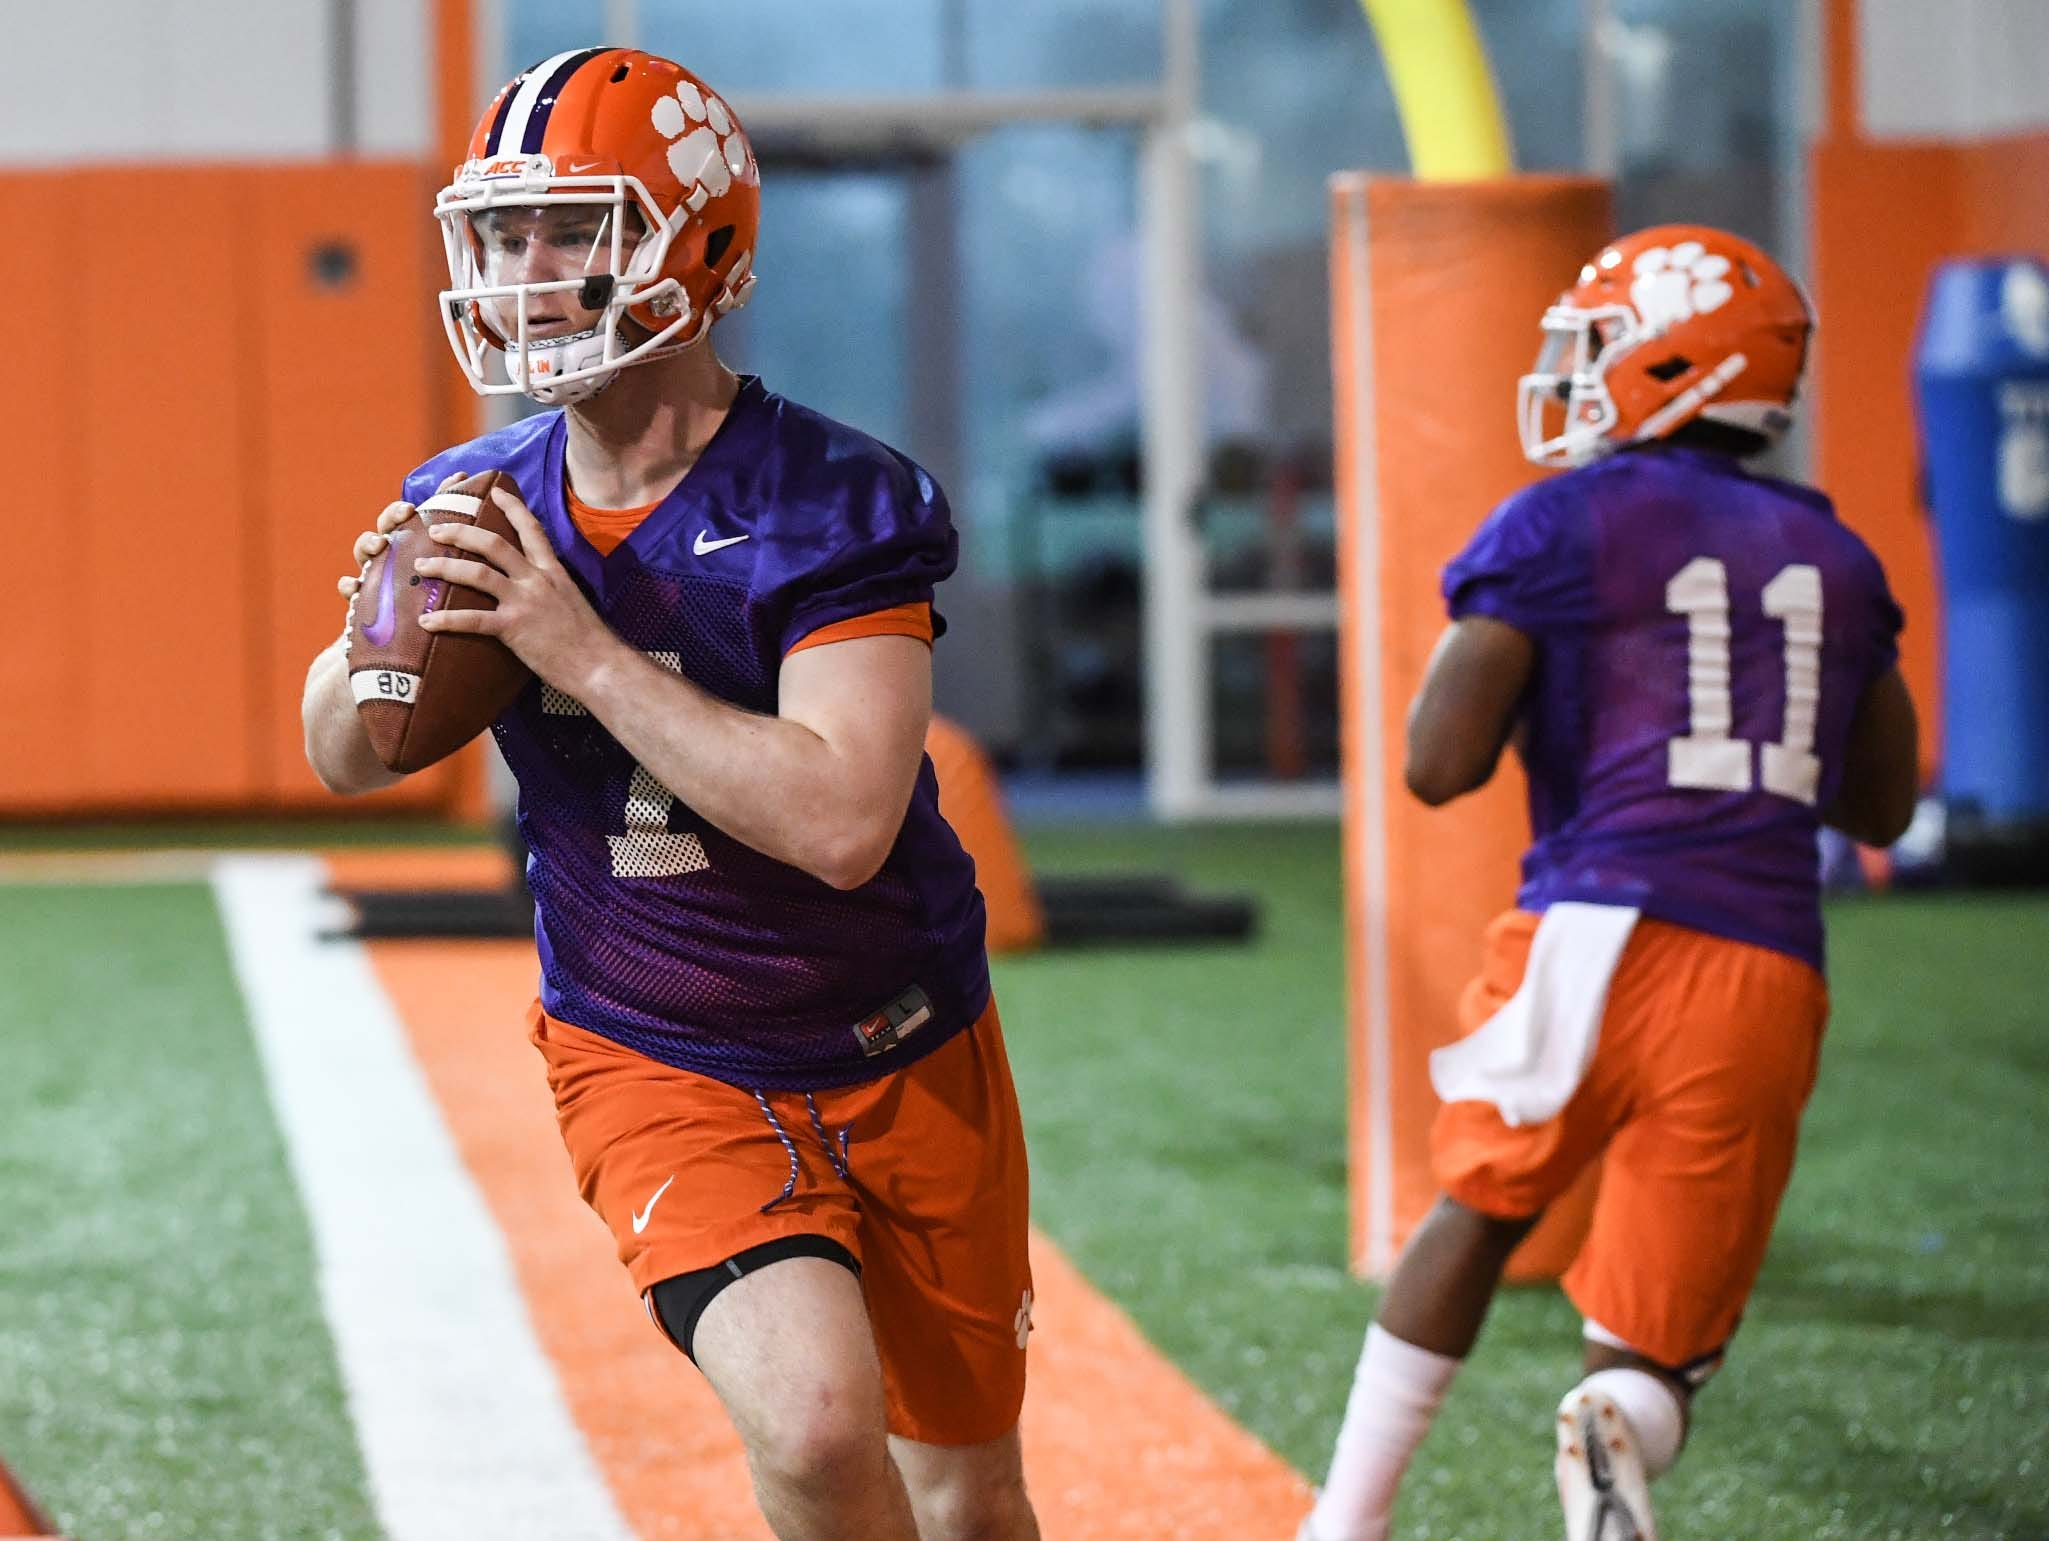 Clemson quarterback Chase Brice (7) and quarterback Taisun Phommachanh(11) in drills during practice at the Poe Indoor Facility in Clemson Friday.